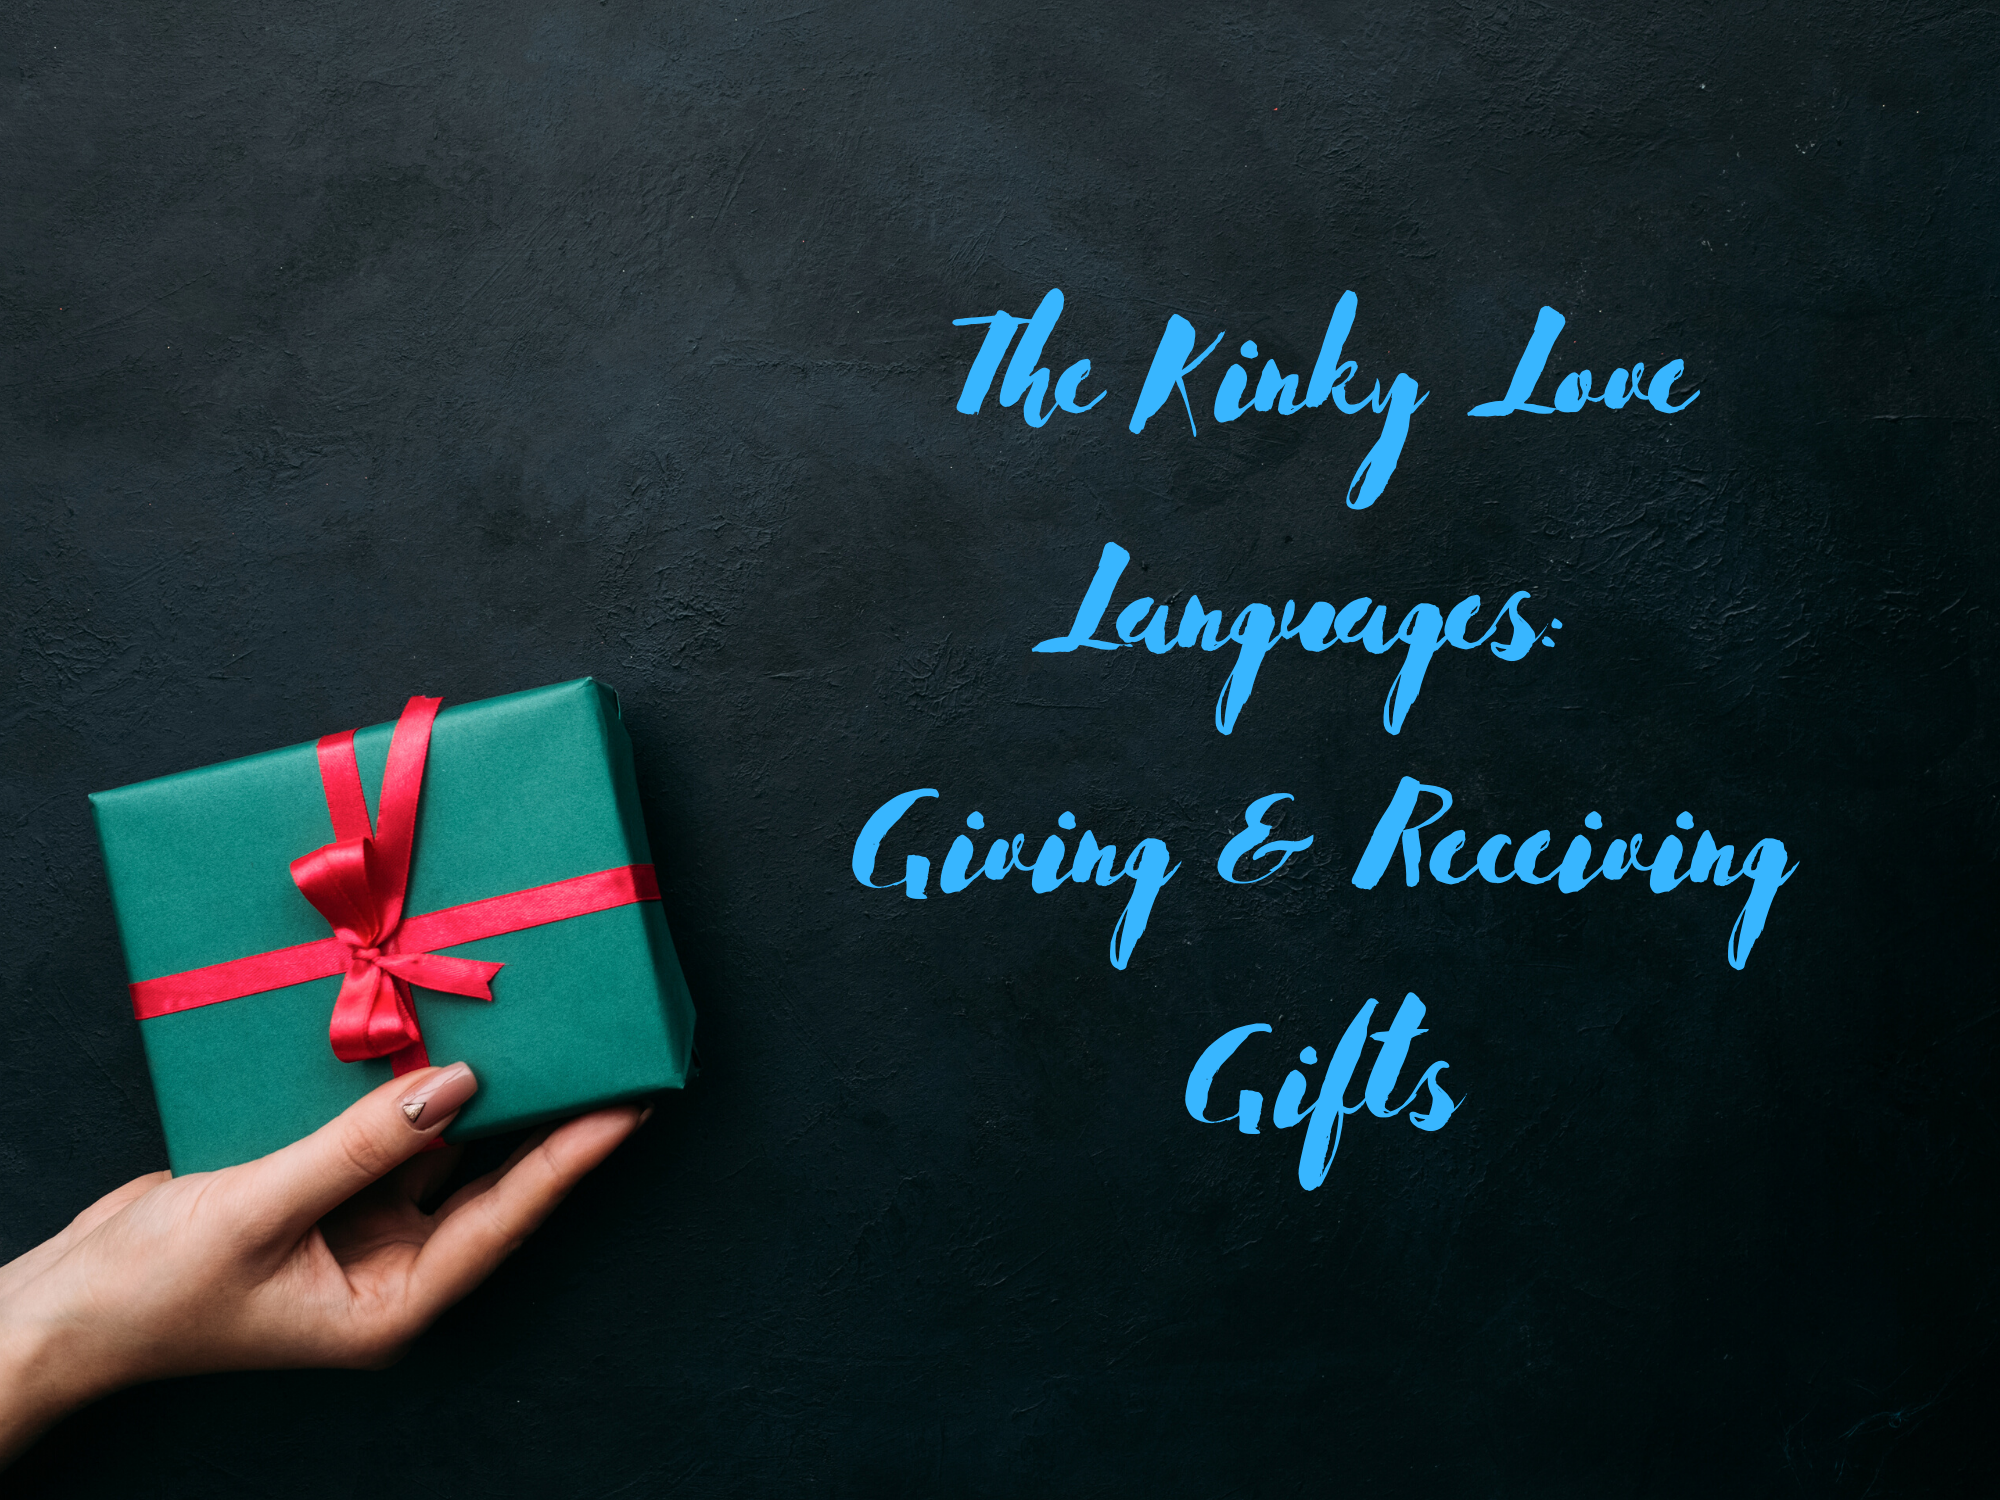 The Kinky Love Languages: Giving & Receiving Gifts